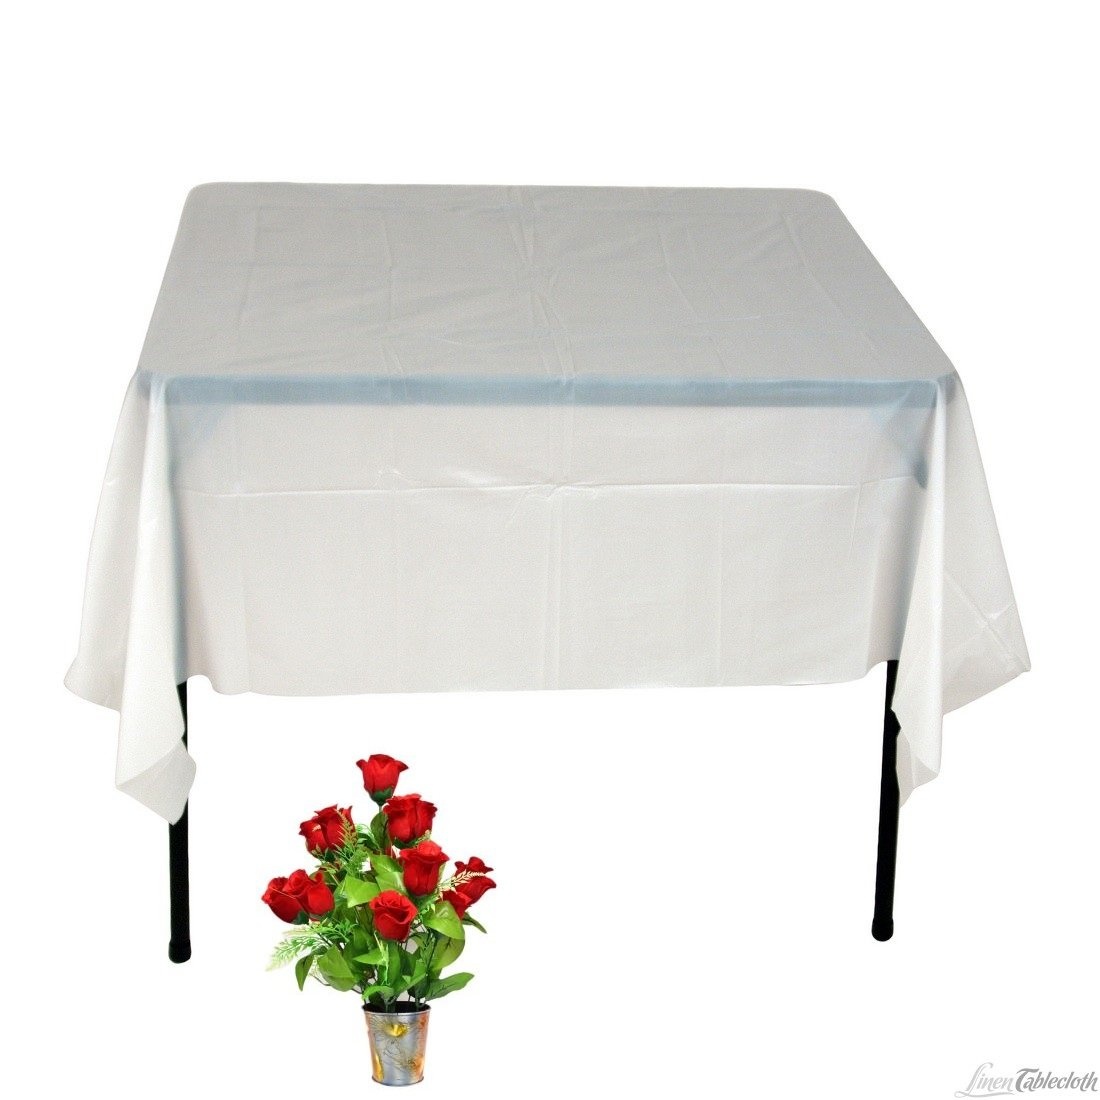 2 Pc OWS 36 X 36 Inch White Square Polyester Table Cloth Table CoverWedding Party Event